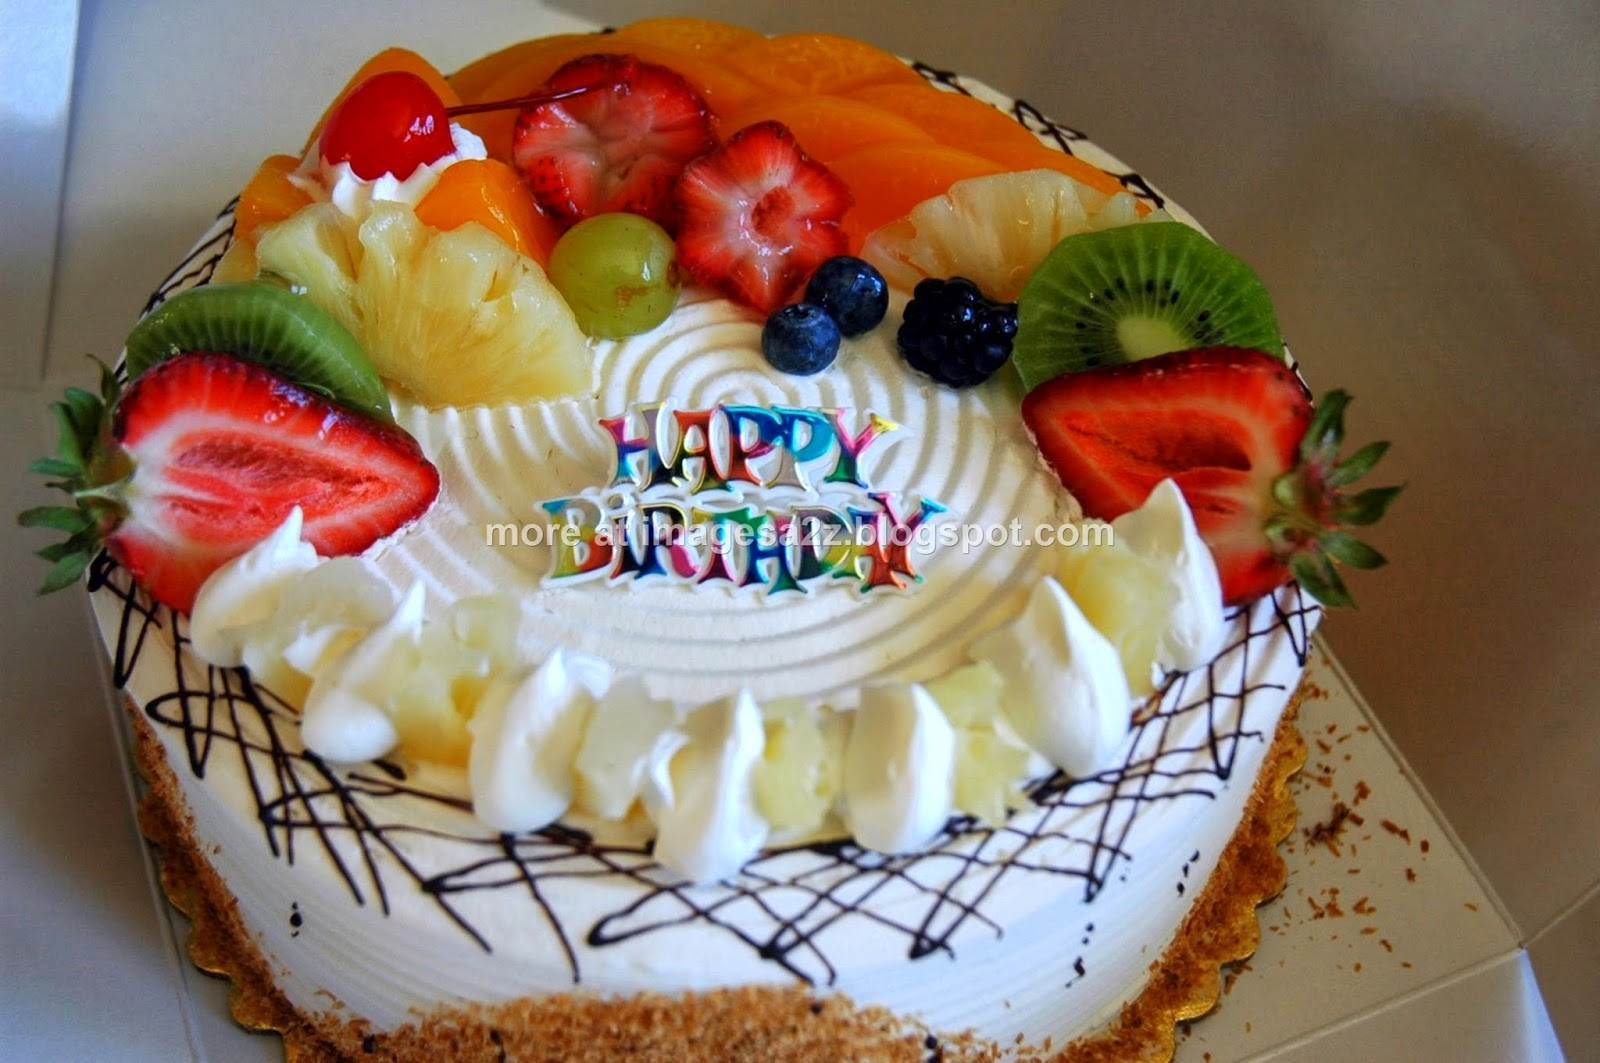 Birthday Cake Wishes  birthday wishes for sister with cake images happy